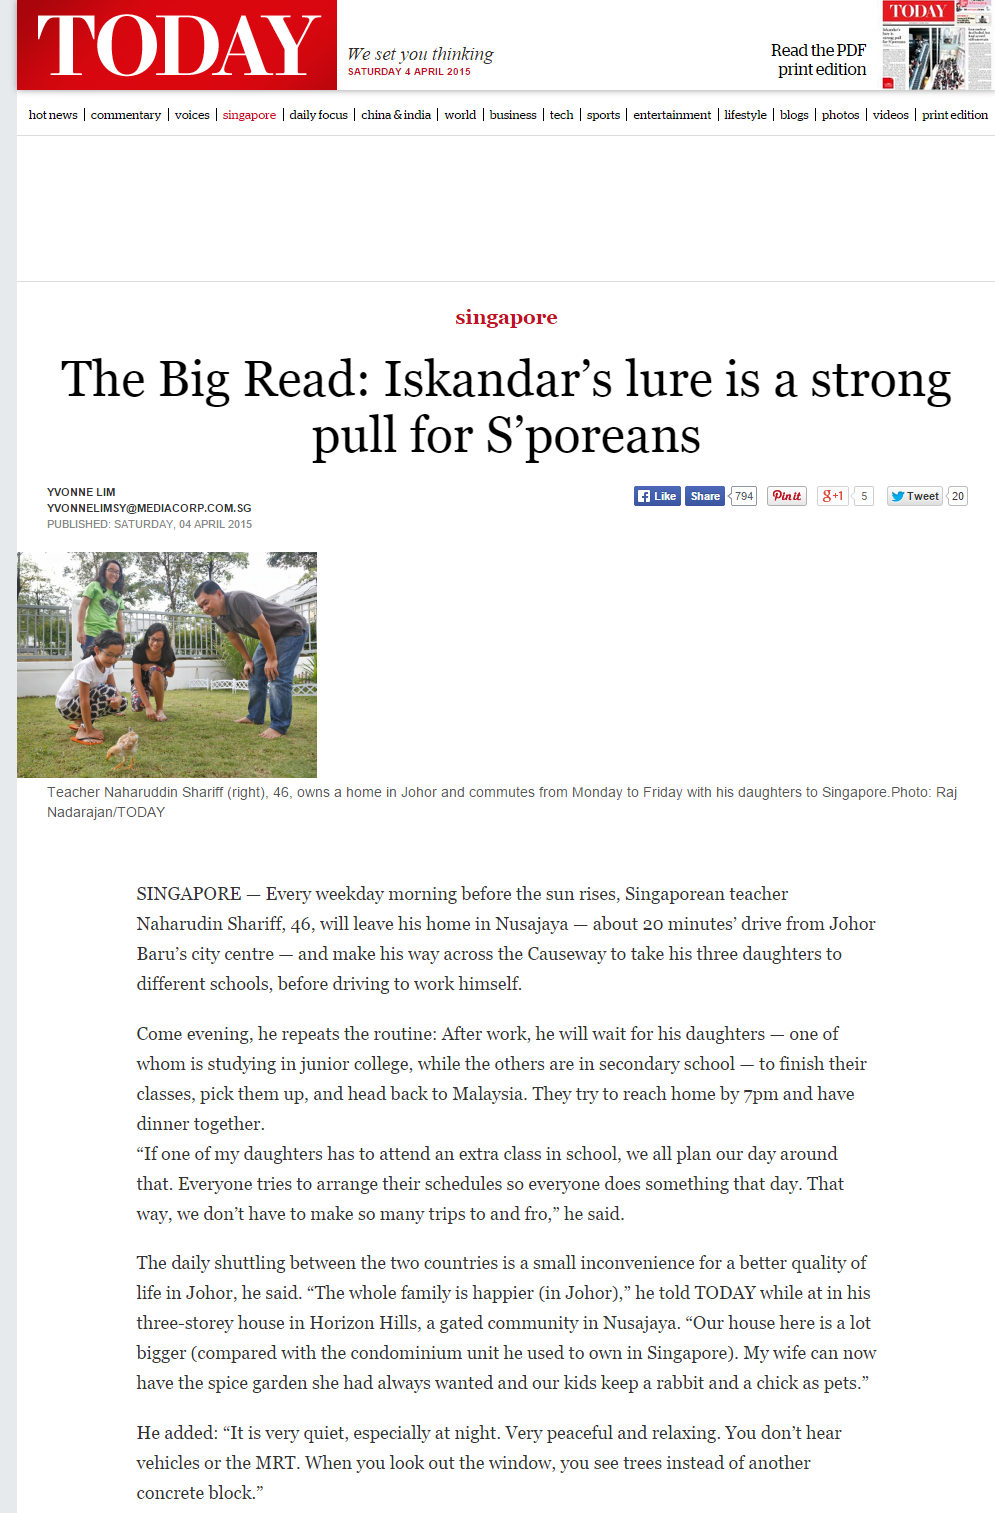 Malaysia Iskandar 040415 -  Iskander's lure is a strong pull for S'poreans